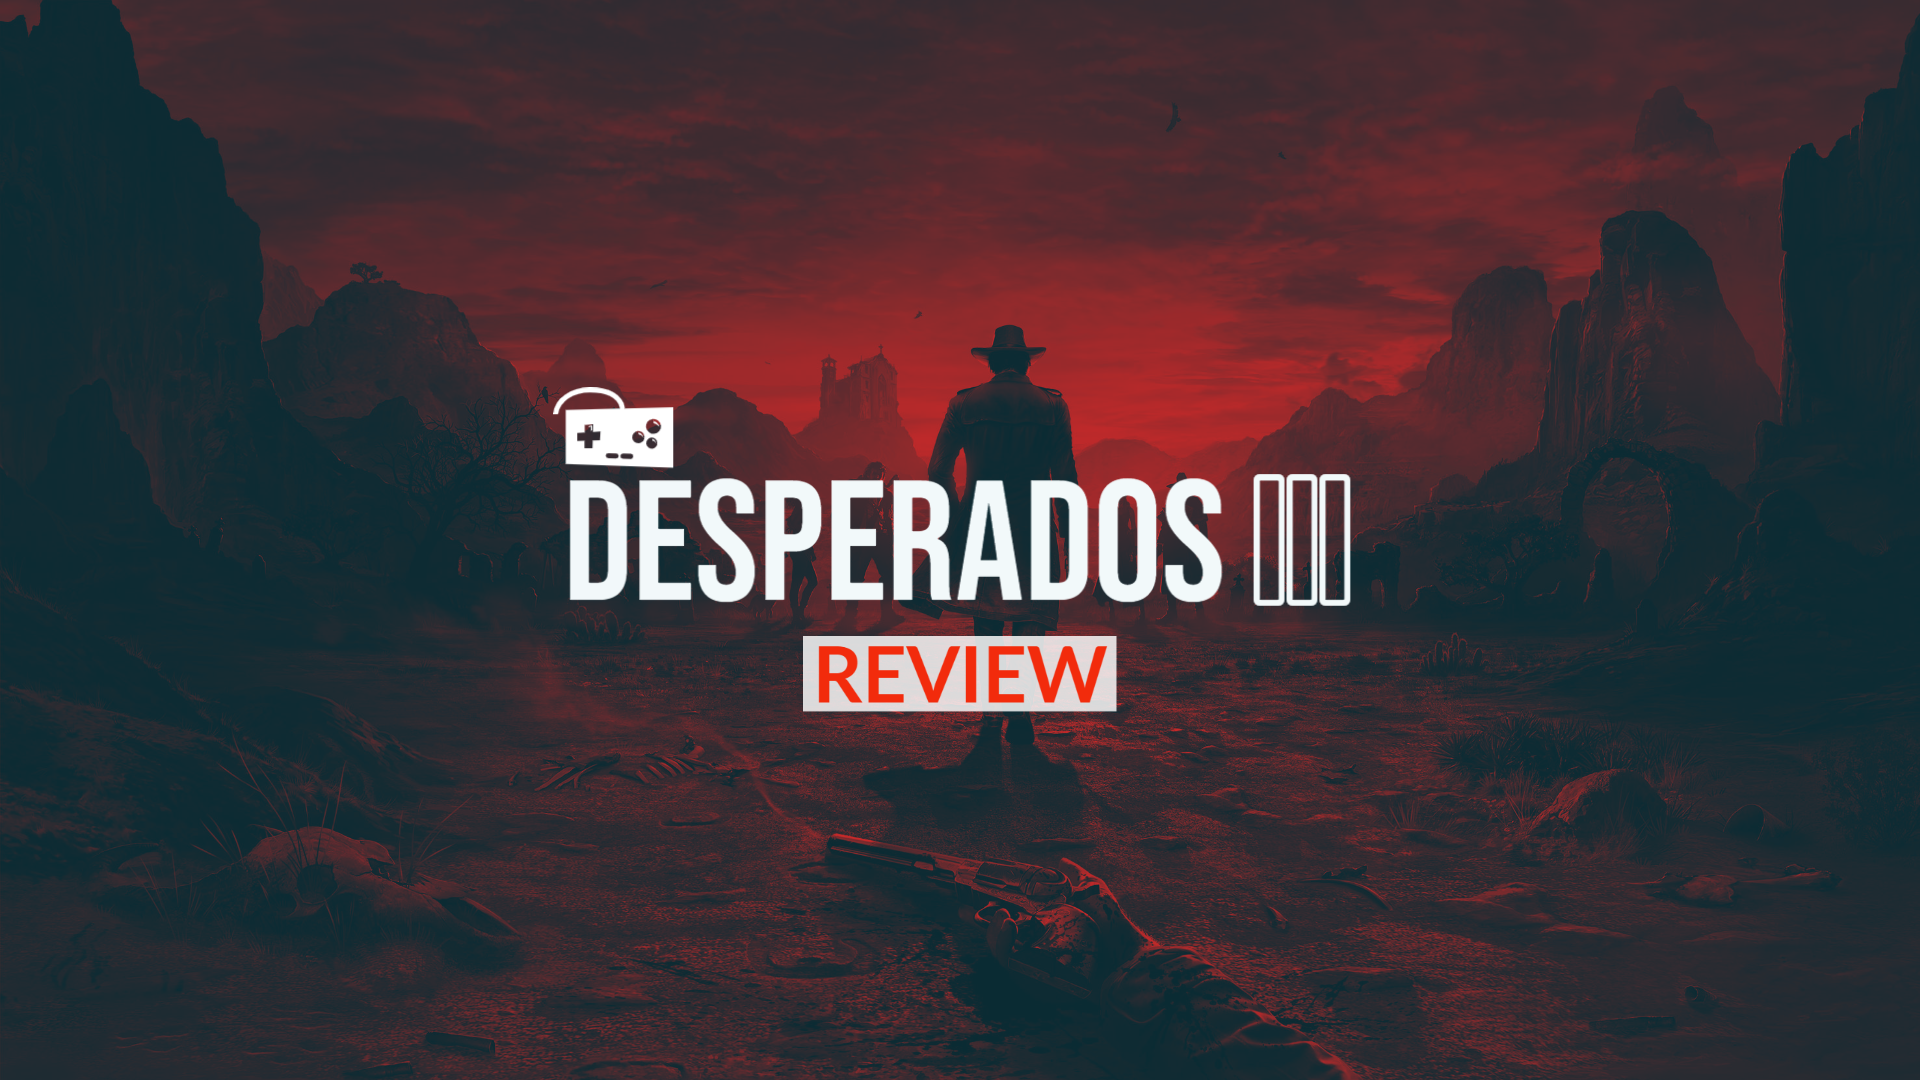 Desperados Iii Review Pc Near Tactical Perfection